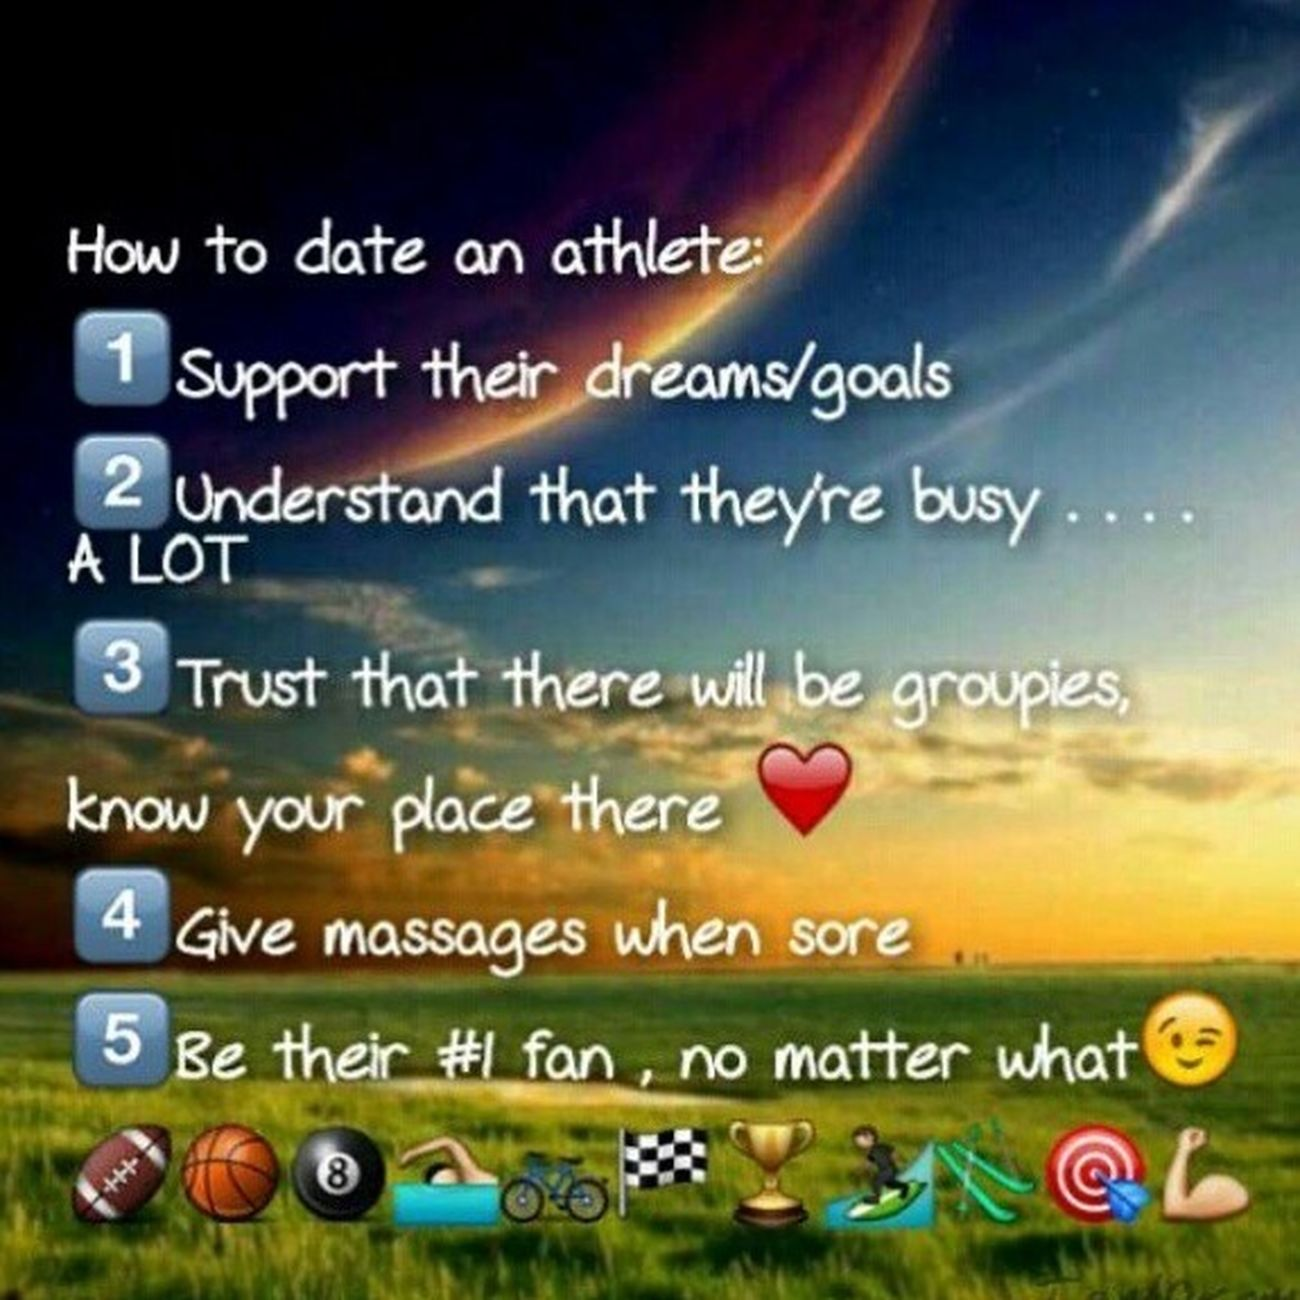 Dating A Athlete